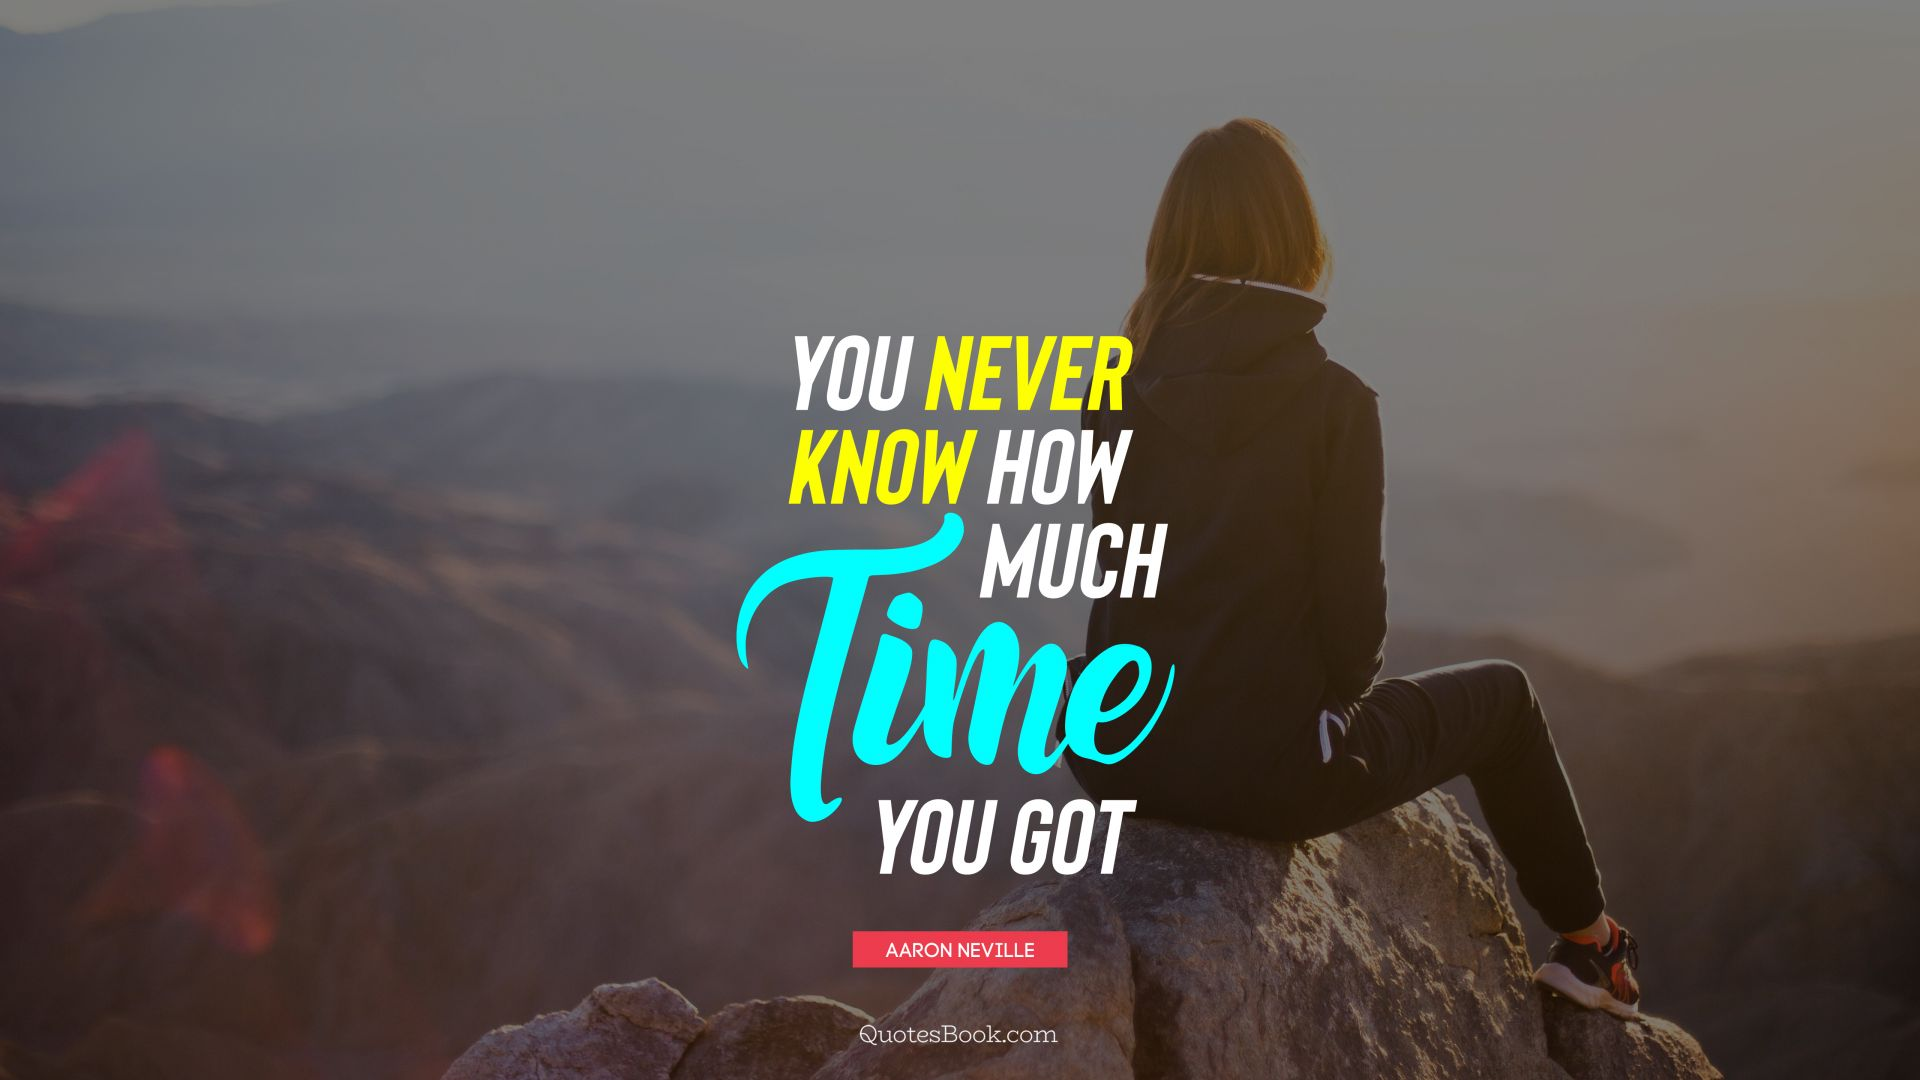 You never know how much time you got. - Quote by Aaron Neville